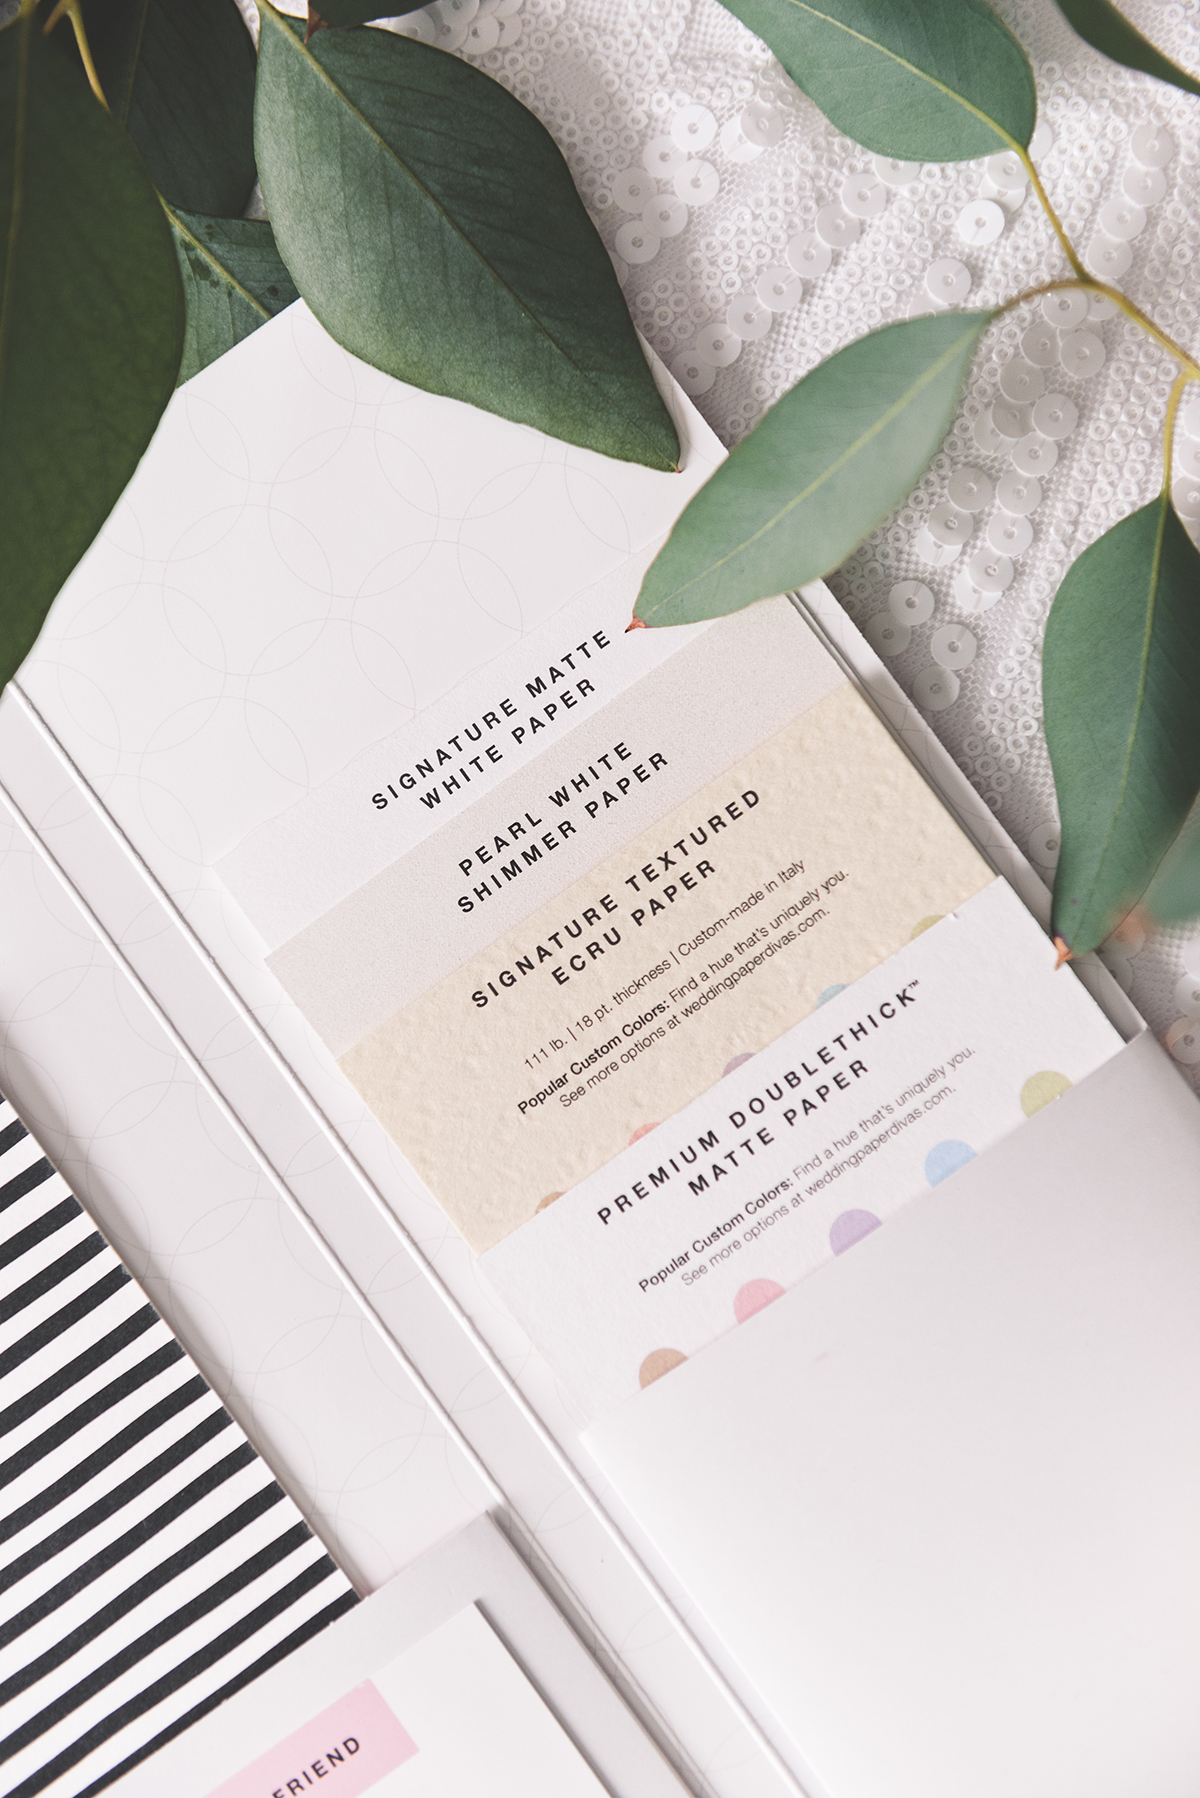 well first up for the contemporary wedding style we loved the ultra modern brushstrokes invitations in cashmere pink with gold foil